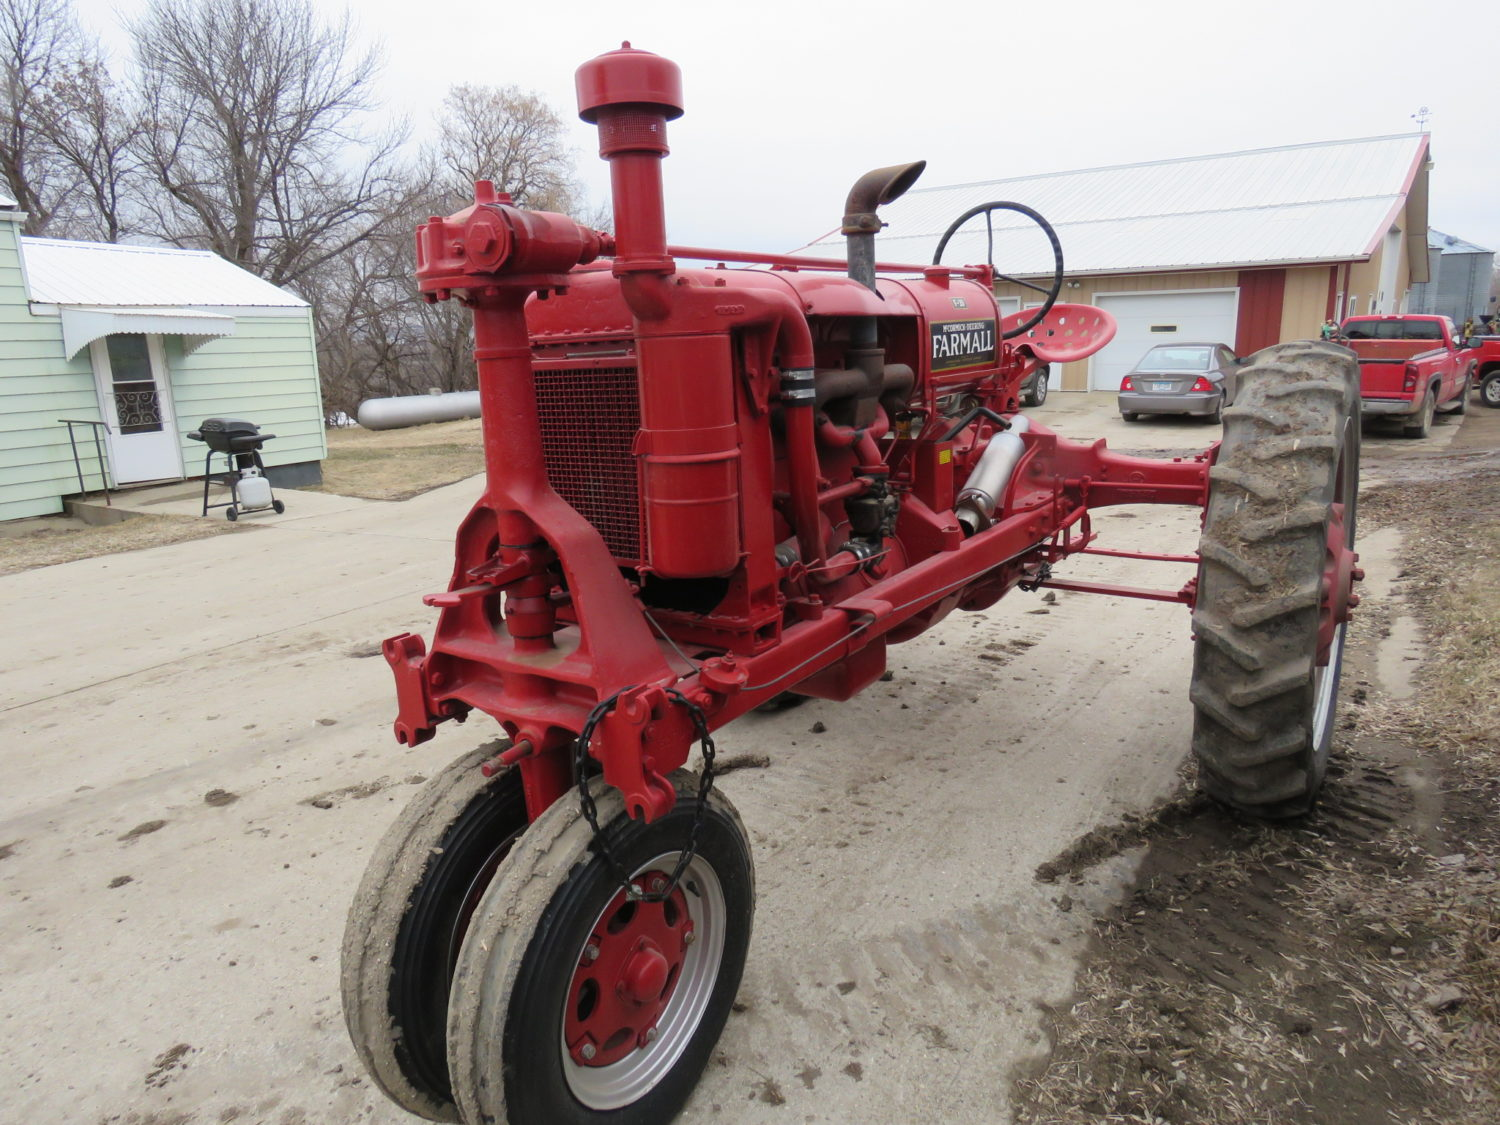 Day 1- Antique Tractors, Farm Equipment, Toys, & More- The James Graham Collection - image 11